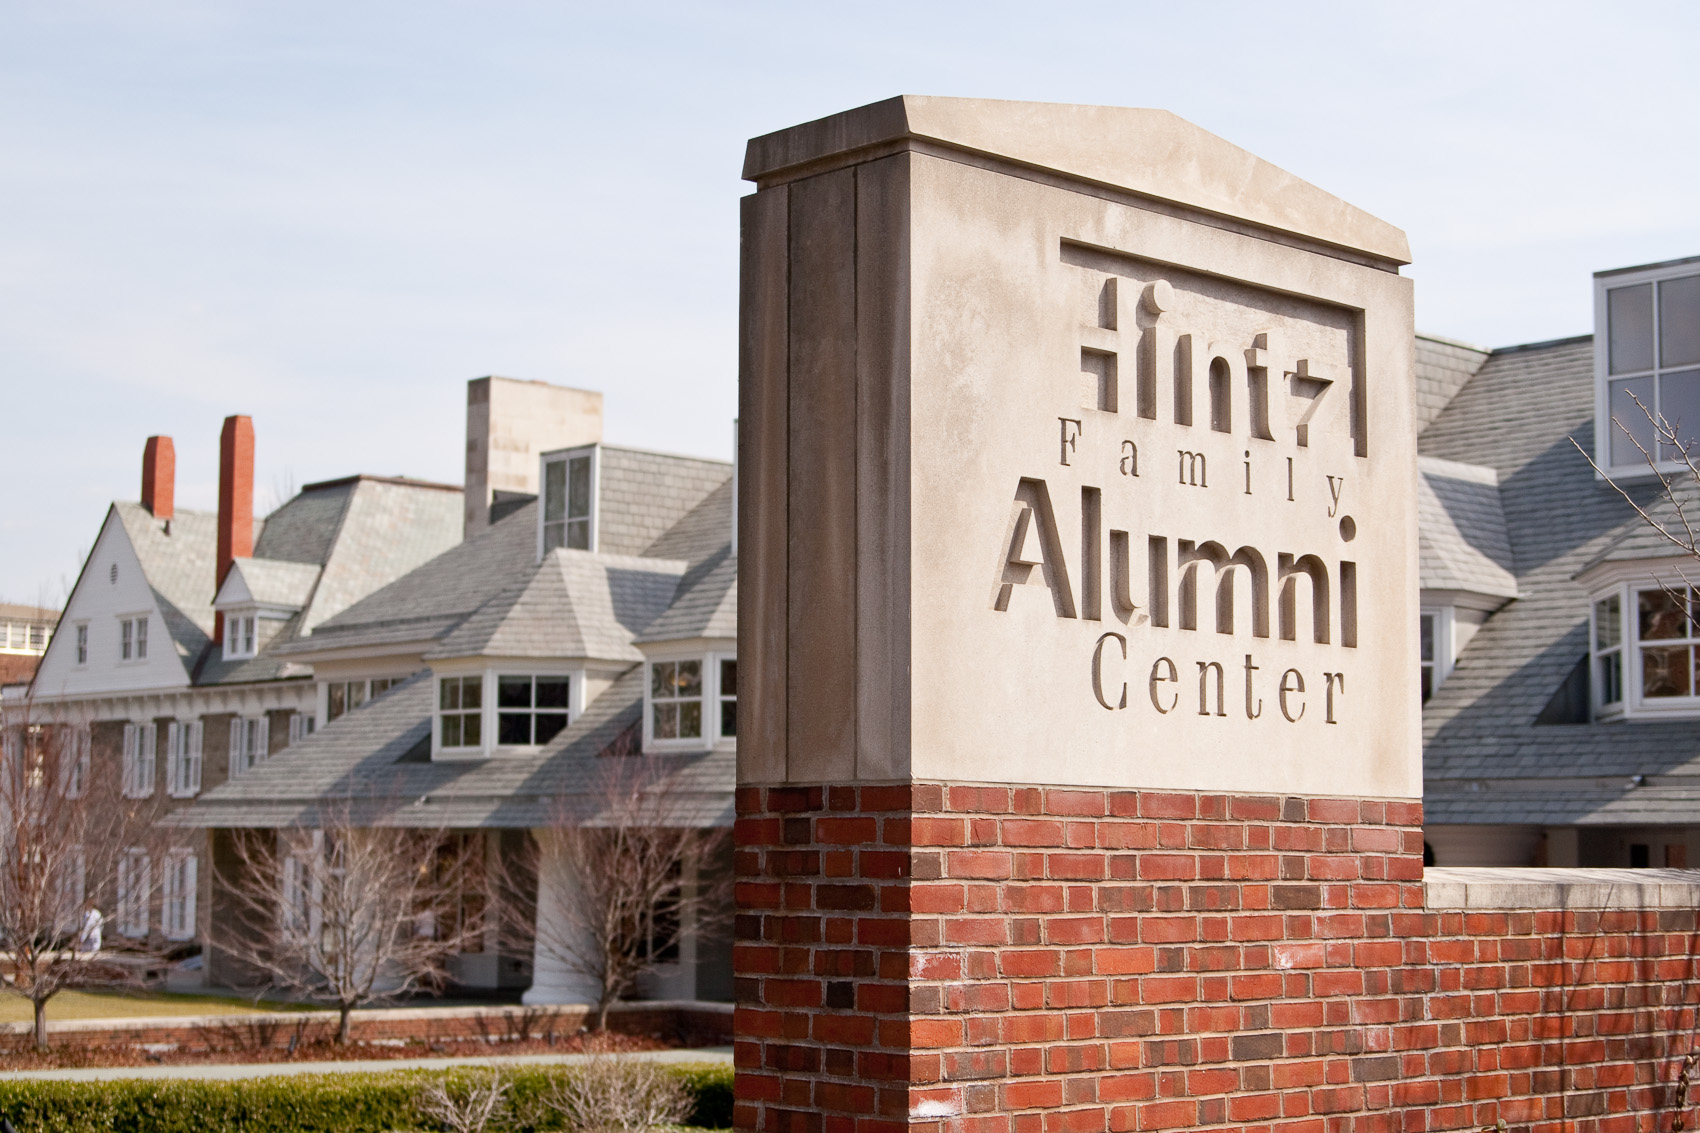 Signage of the Hintz Alumni Center at Penn State University in State College, PA | J. Eldon Zimmerman Photography | Lancaster, PA Architecture Photographer